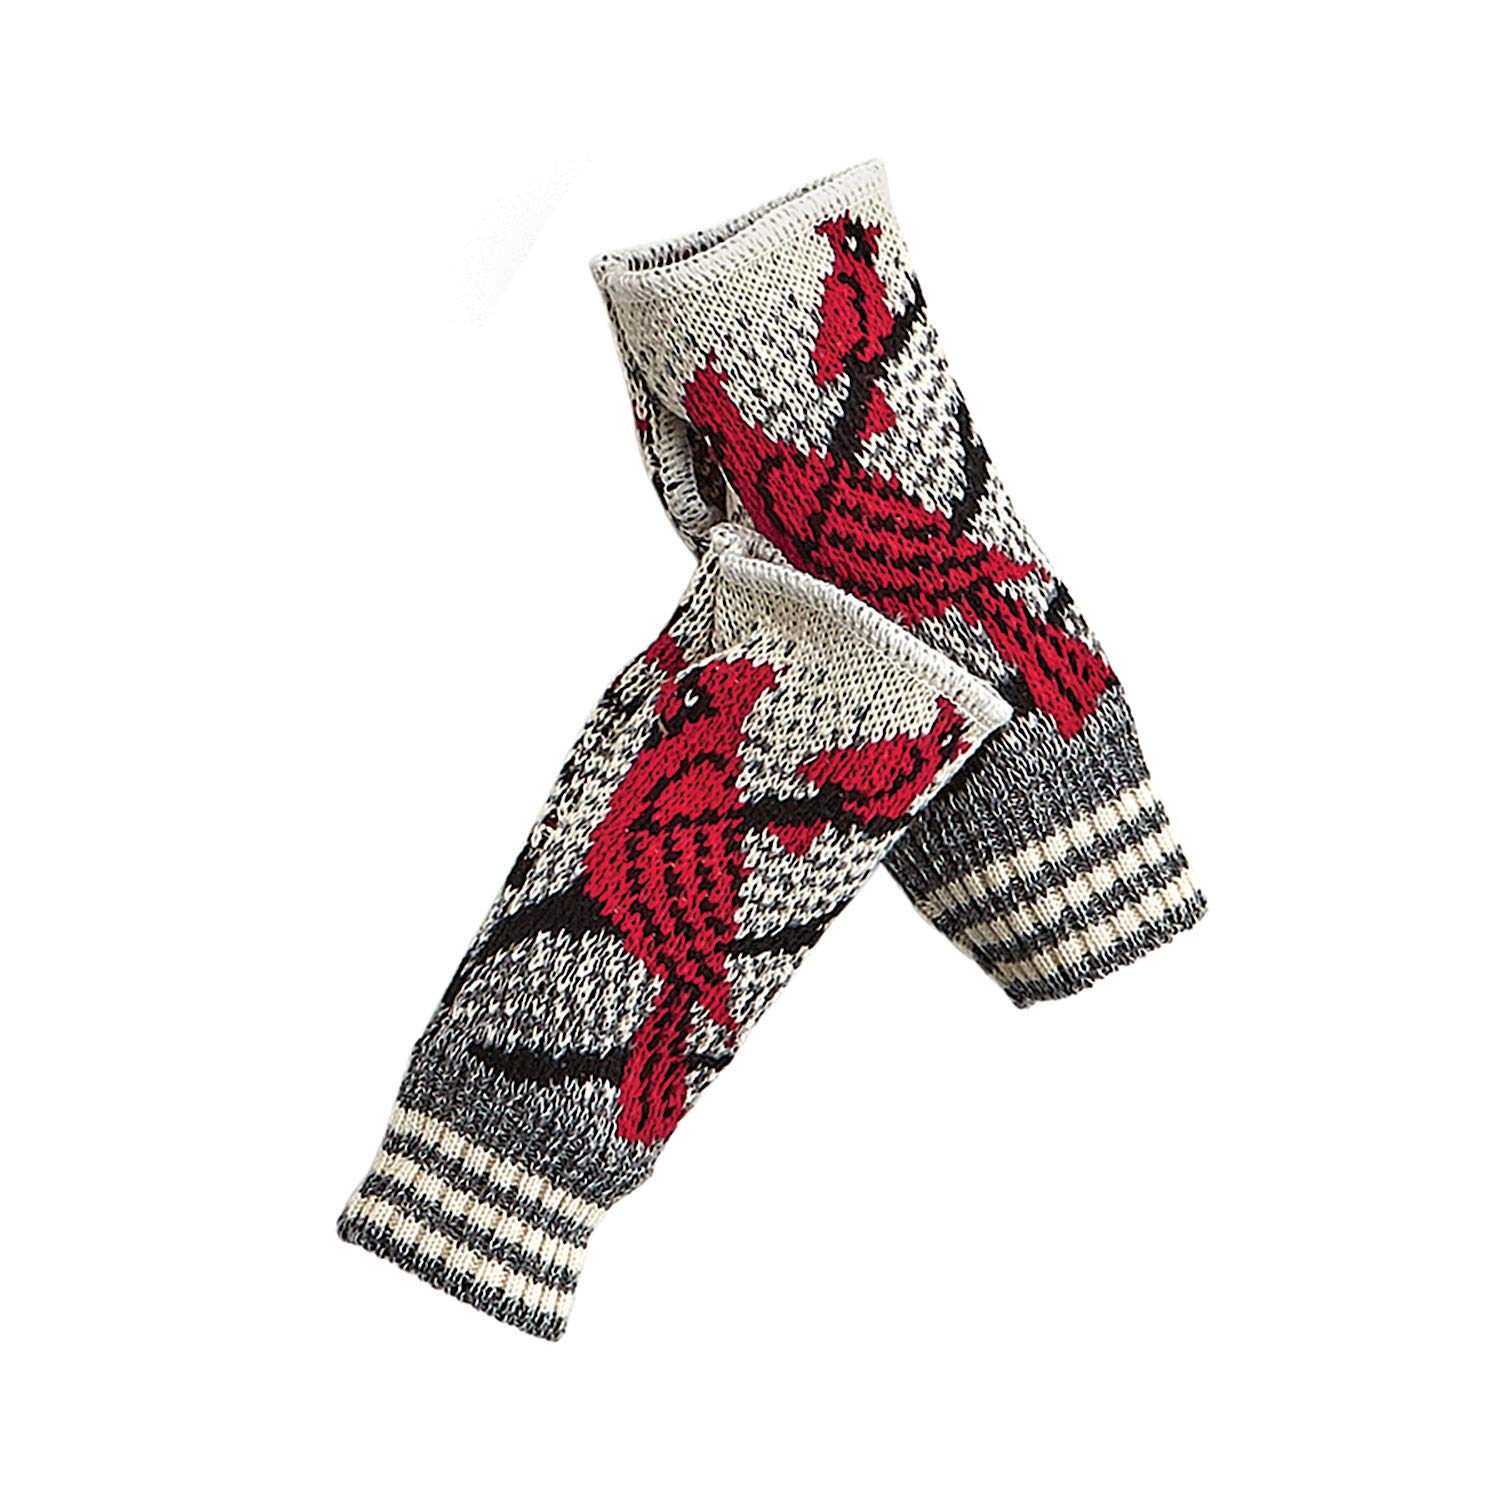 Green 3 Women's Cardinals Hand Warmers - Recycled Fingerless Gloves with Birds